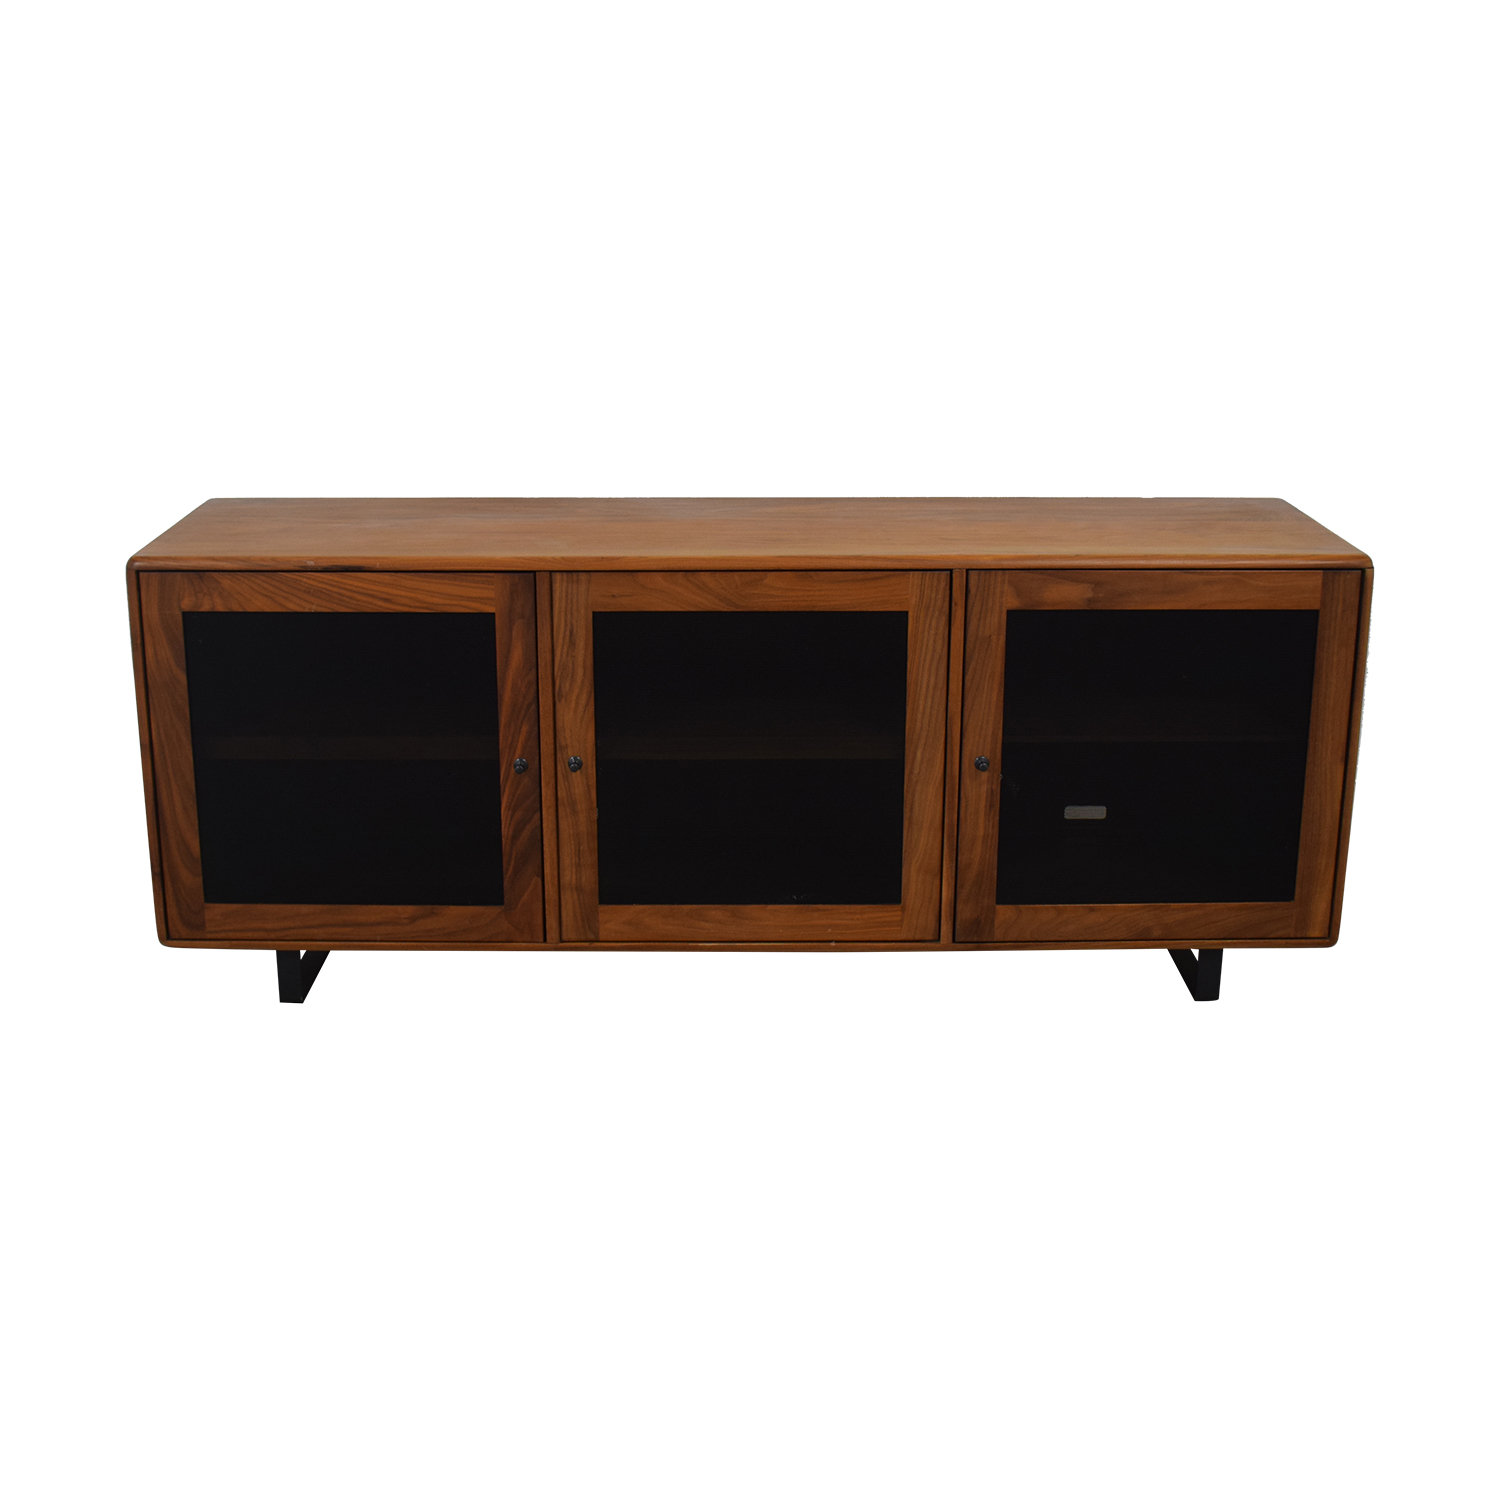 Room & Board Whitney Media Cabinet / Storage